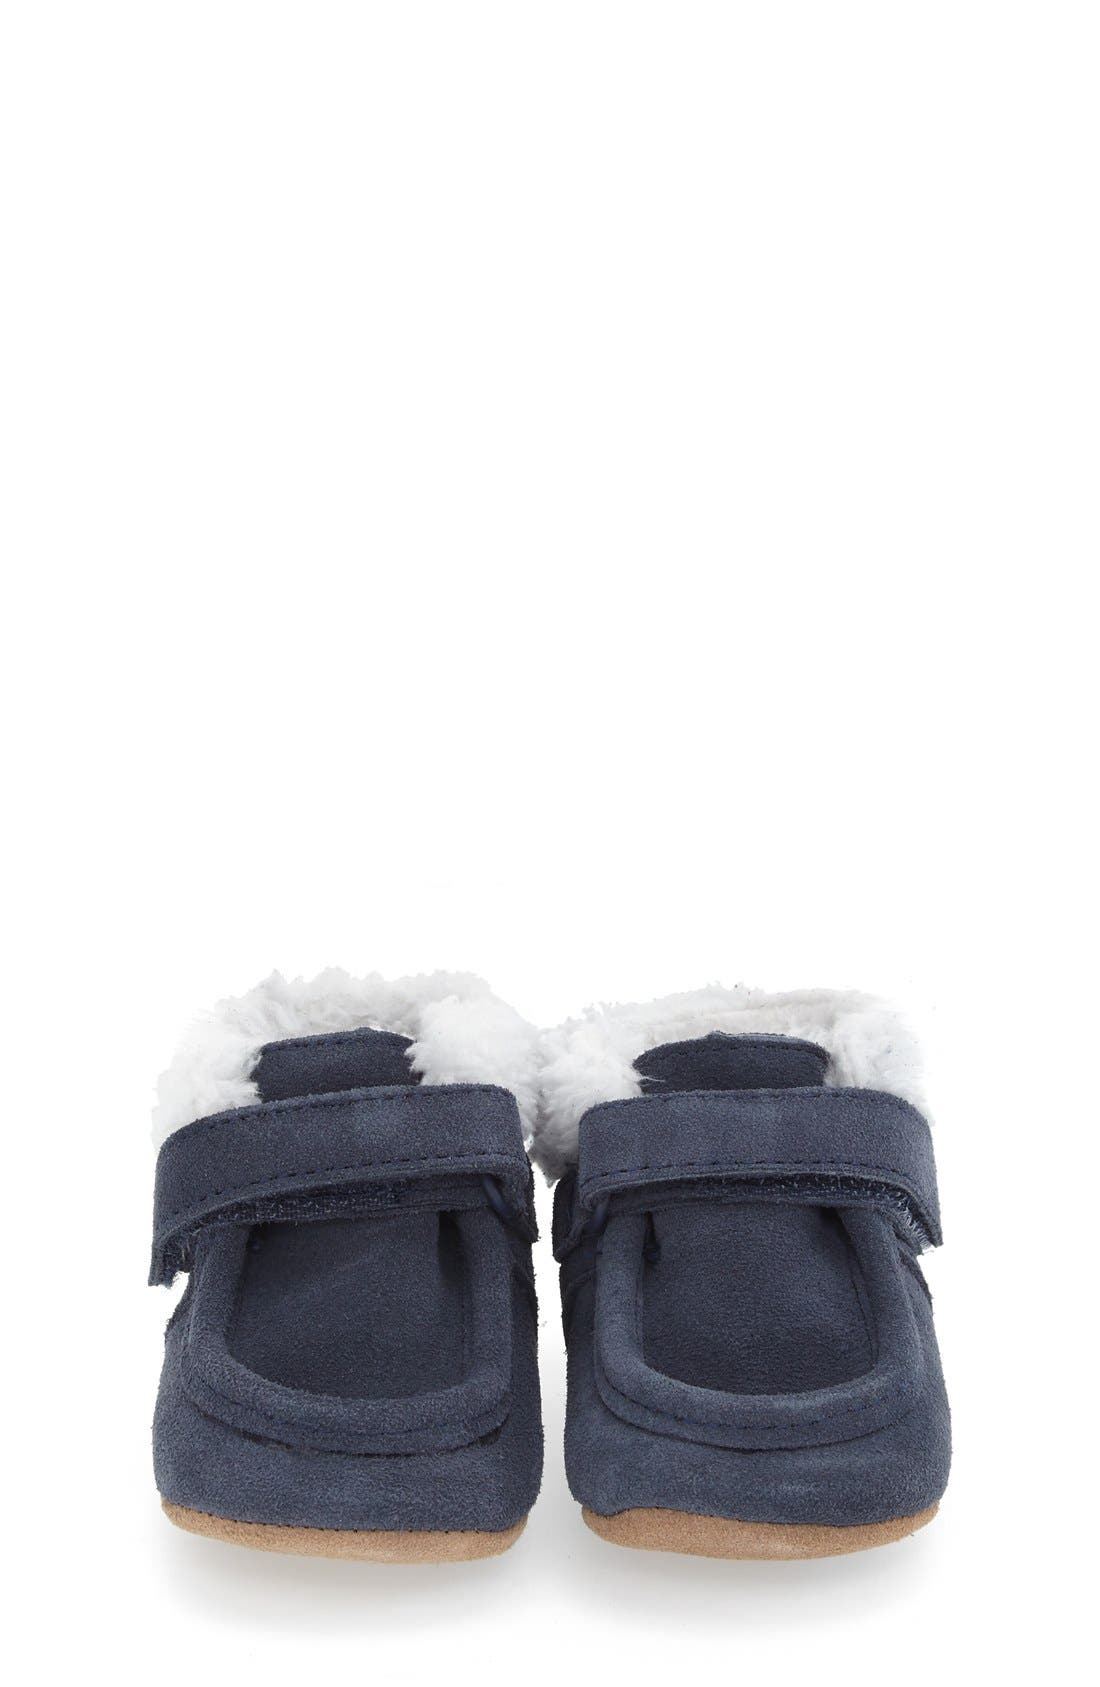 'Sawyer Snuggle' Crib Shoe,                             Alternate thumbnail 3, color,                             Navy Leather